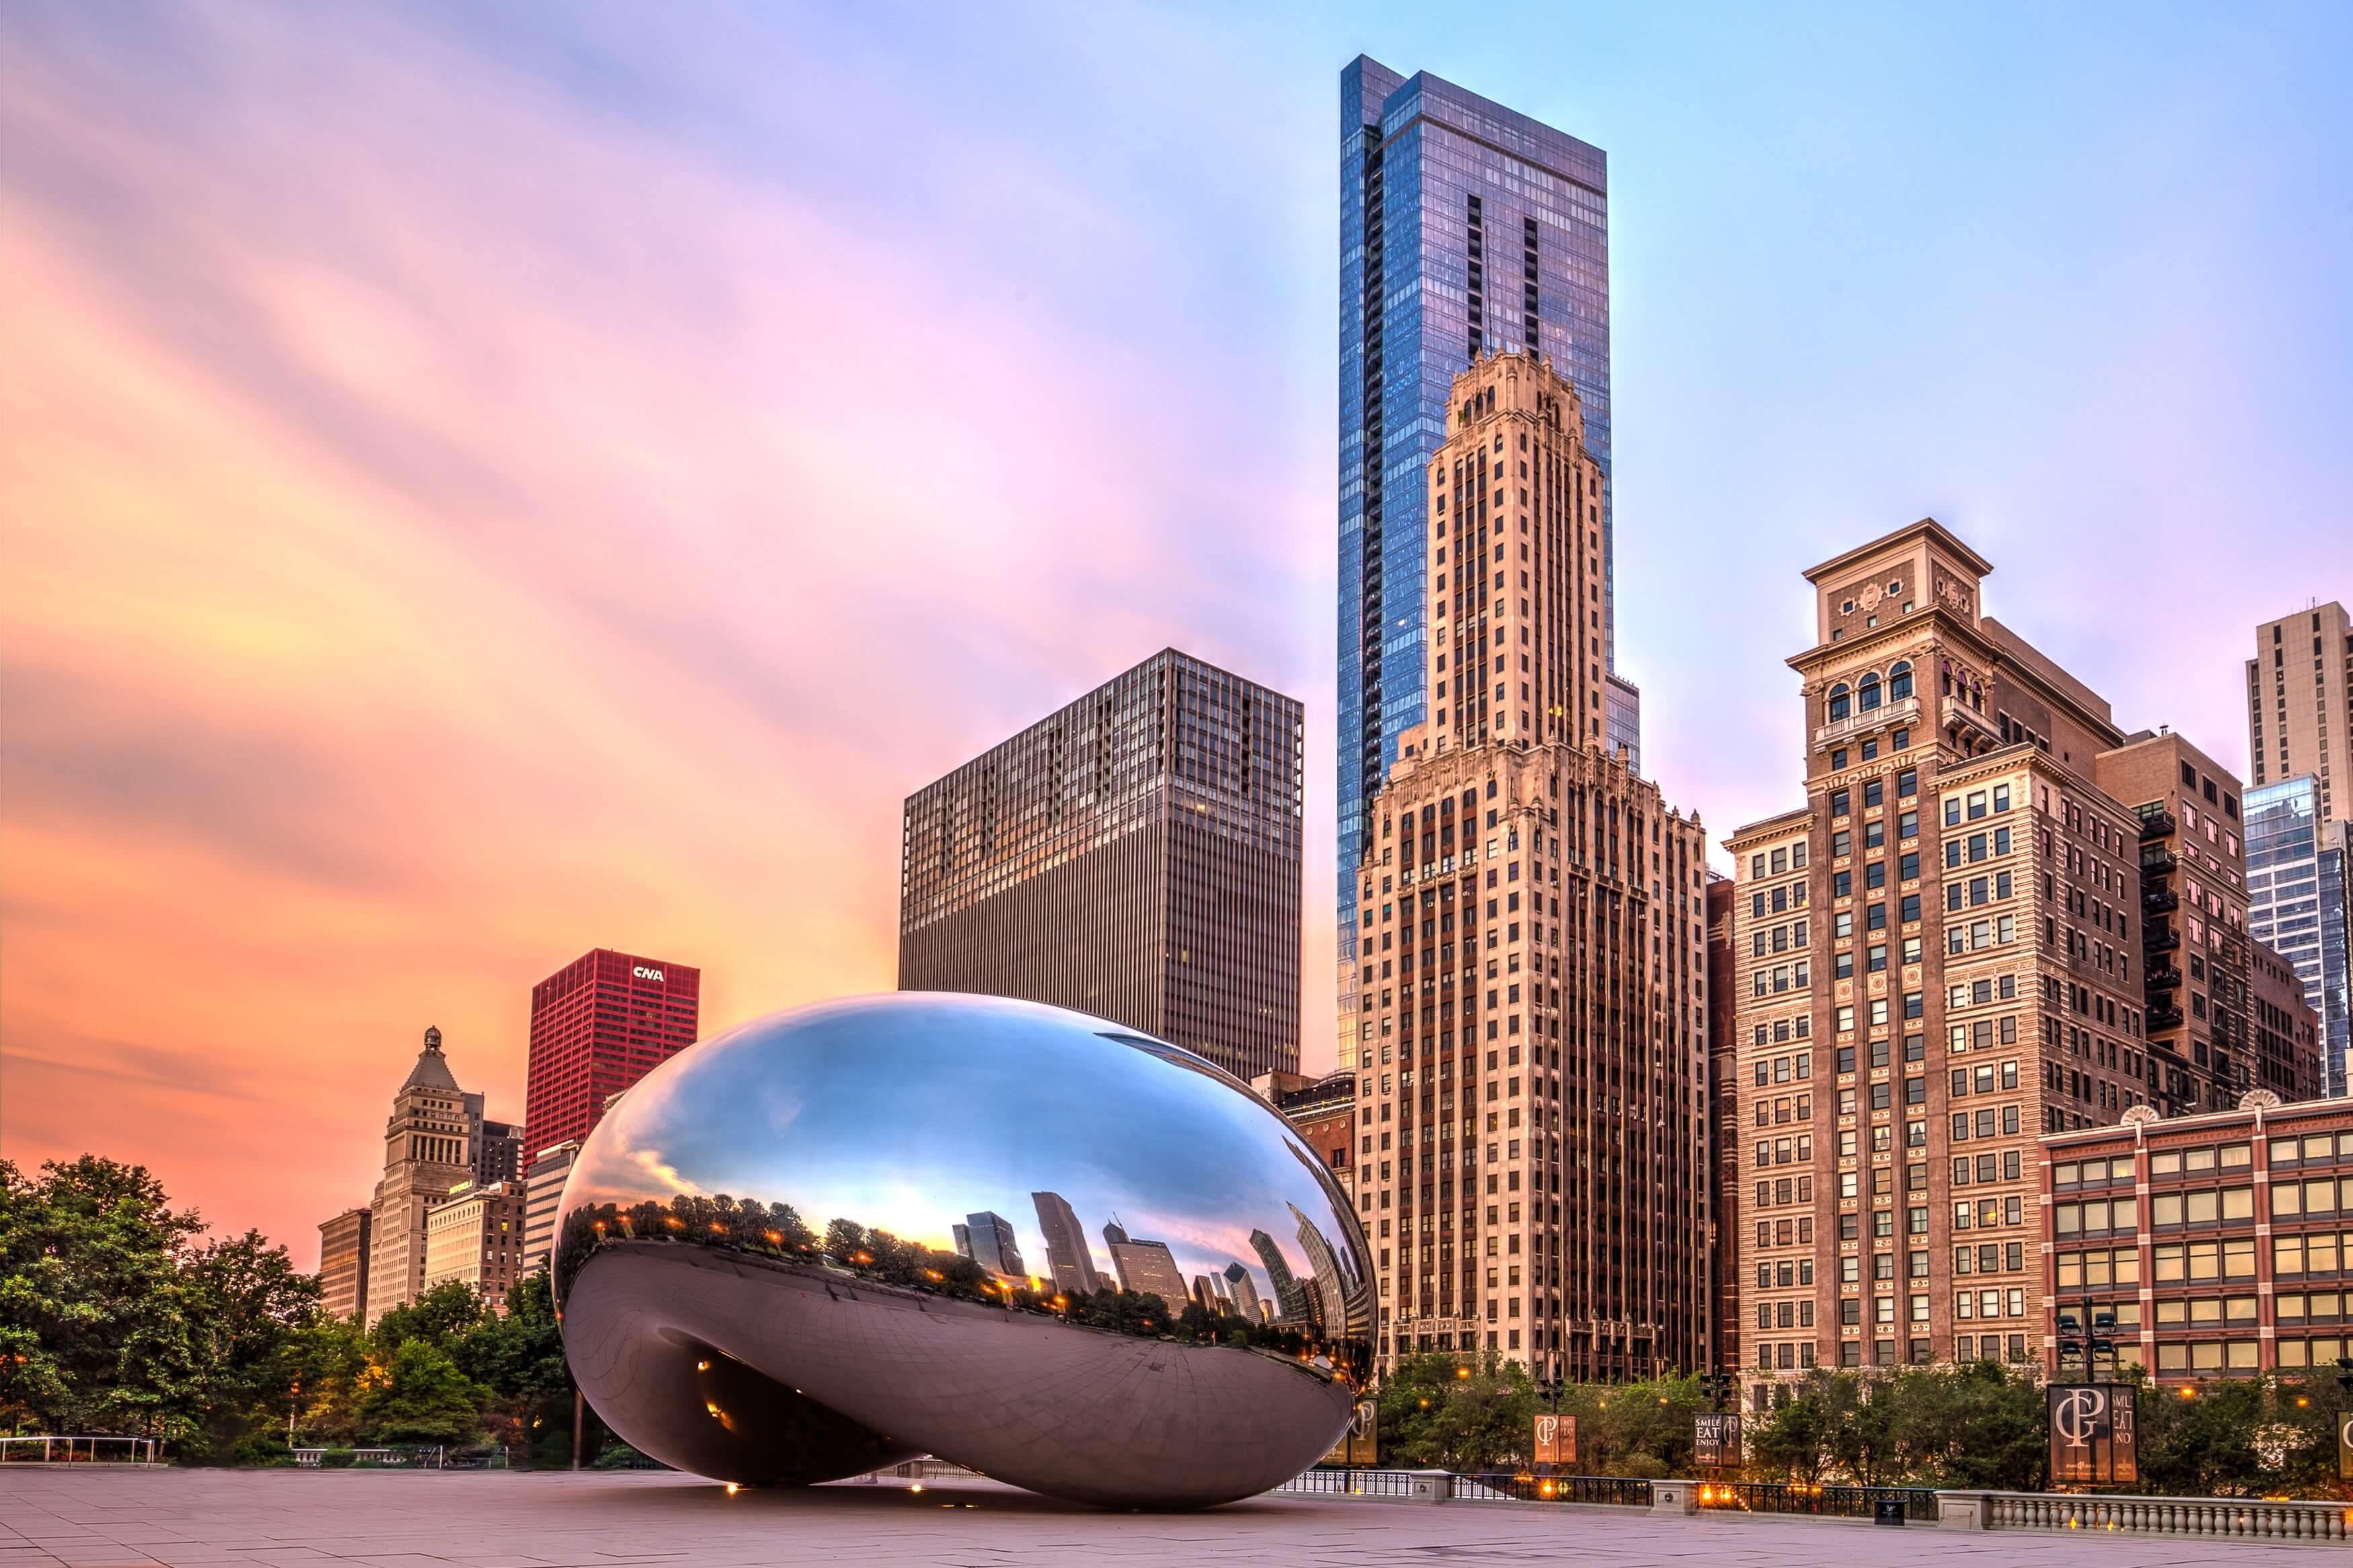 this is a photo of of the reflective bean that is in downtown Chicago